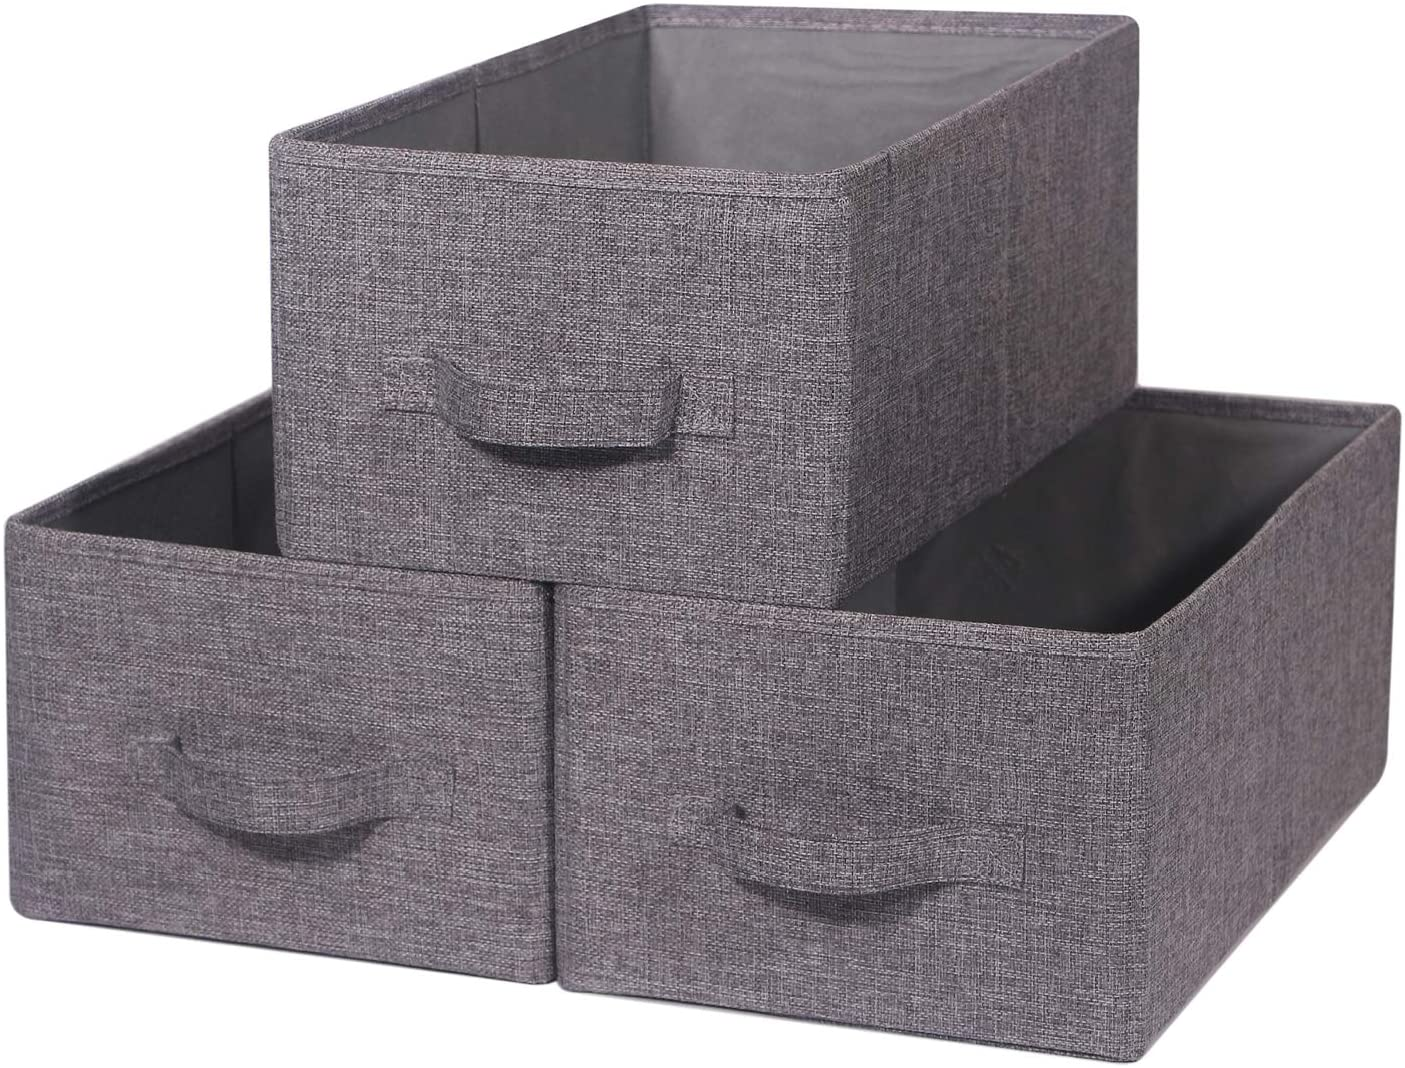 Set of 3 Closet Organizer Bins with Handle, Linen Fabric Foldable Storage Baskets Cloth Box Containers for Shelves Nursery Home Office Kids Toys Baby Clothes Clothing Large